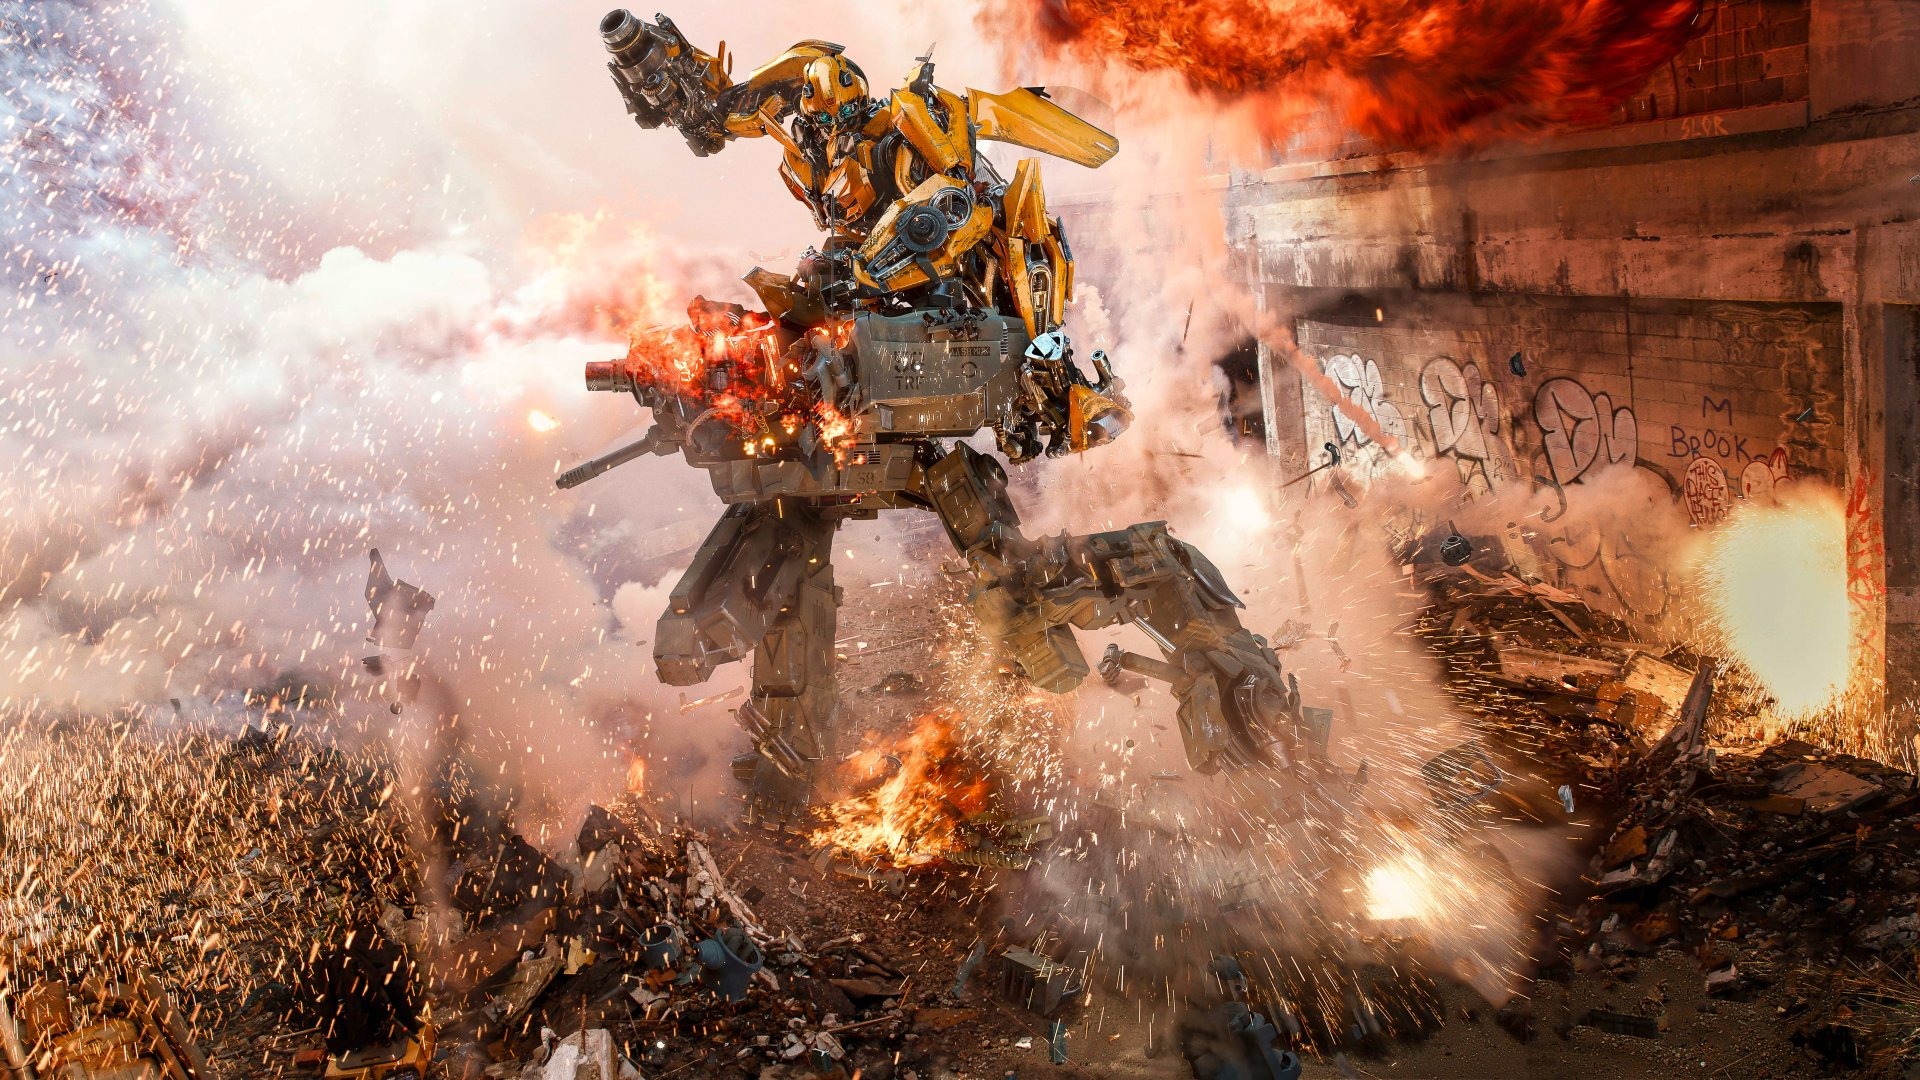 Movie - Transformers: The Last Knight  Bumblebee (Transformers) Wallpaper